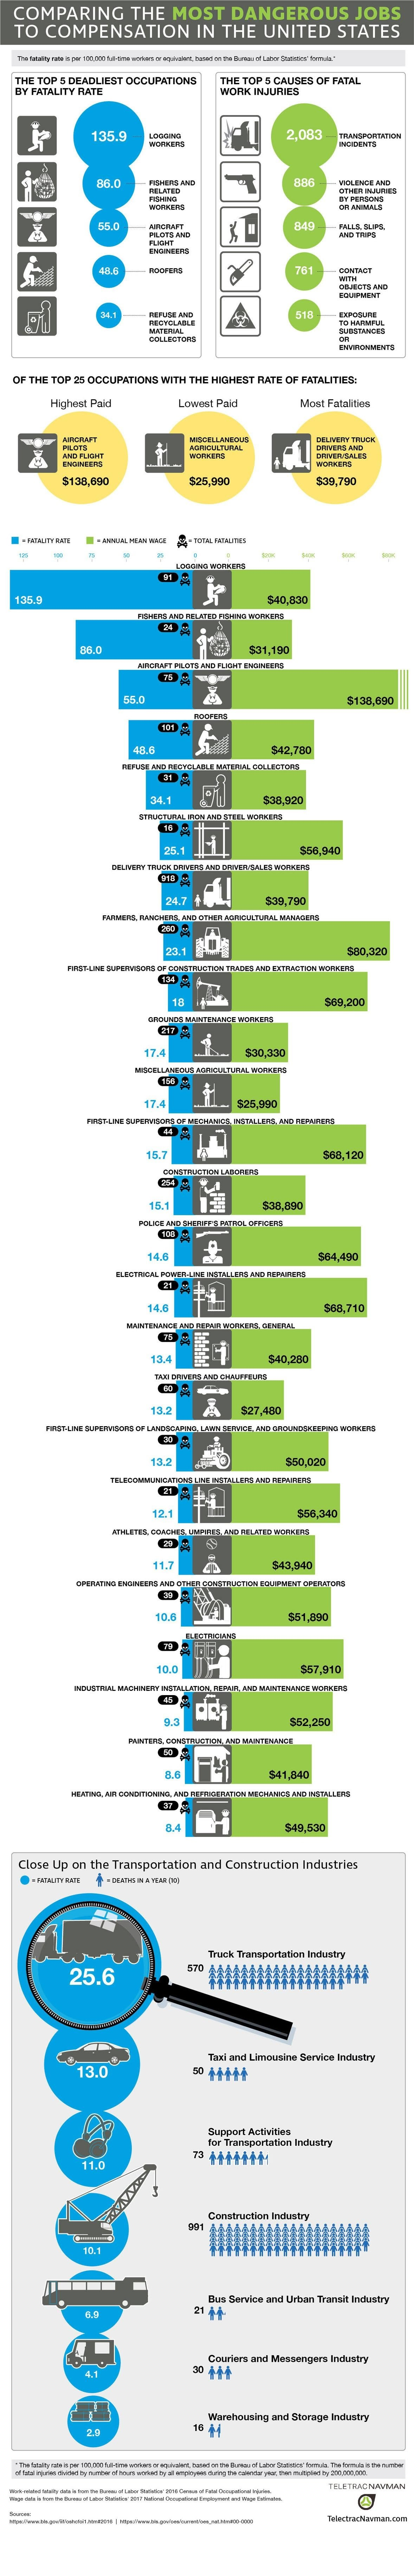 Most Dangerous Jobs in the United States #infographic